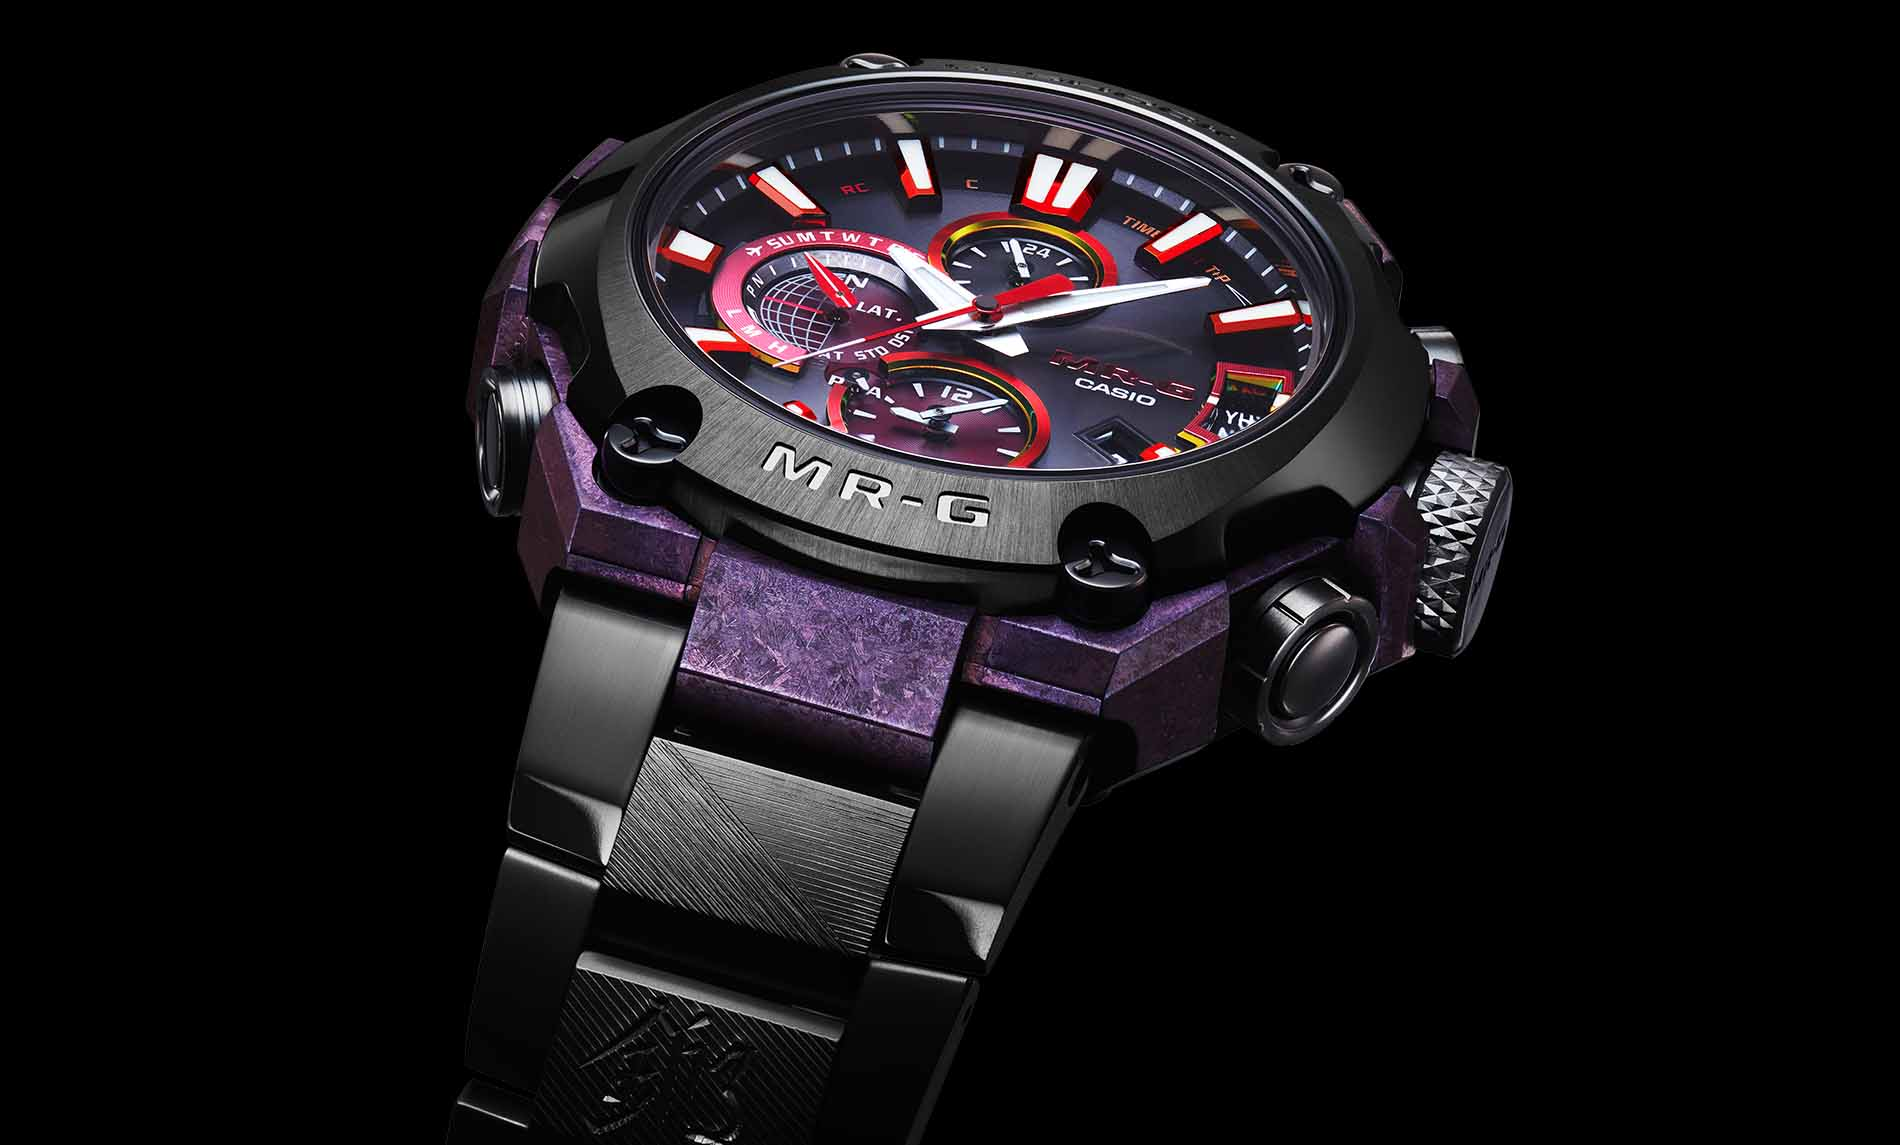 Casio G Shock MR G Comes To America With Titanium Case and